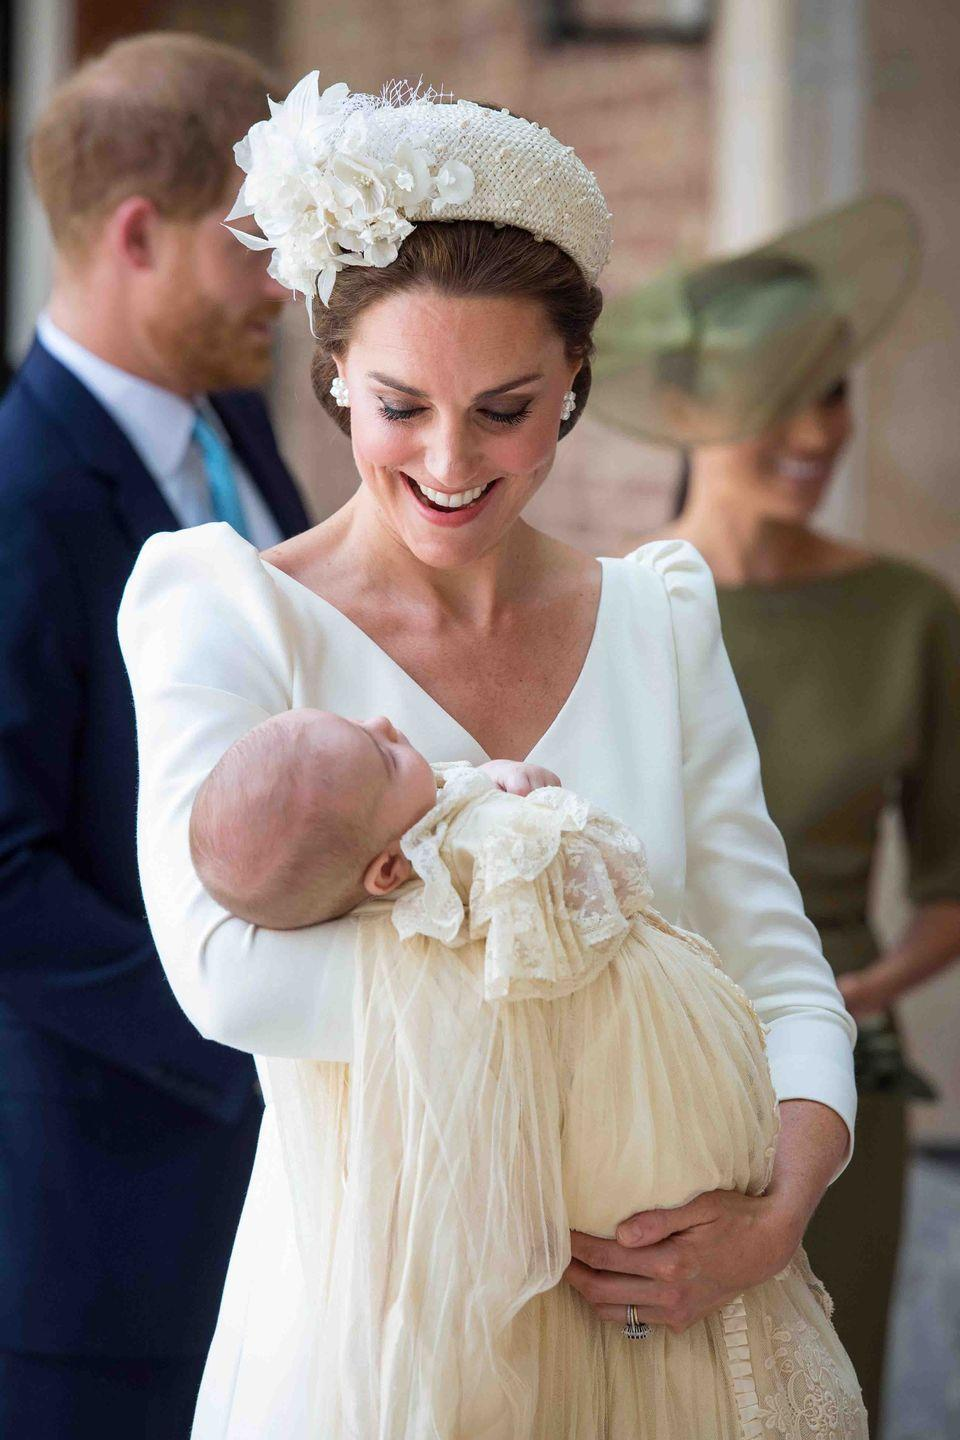 <p>The Duchess seems to trust the label for many momentous life events. For example, she chose McQueen for her youngest child, Prince Louis's christening. </p>